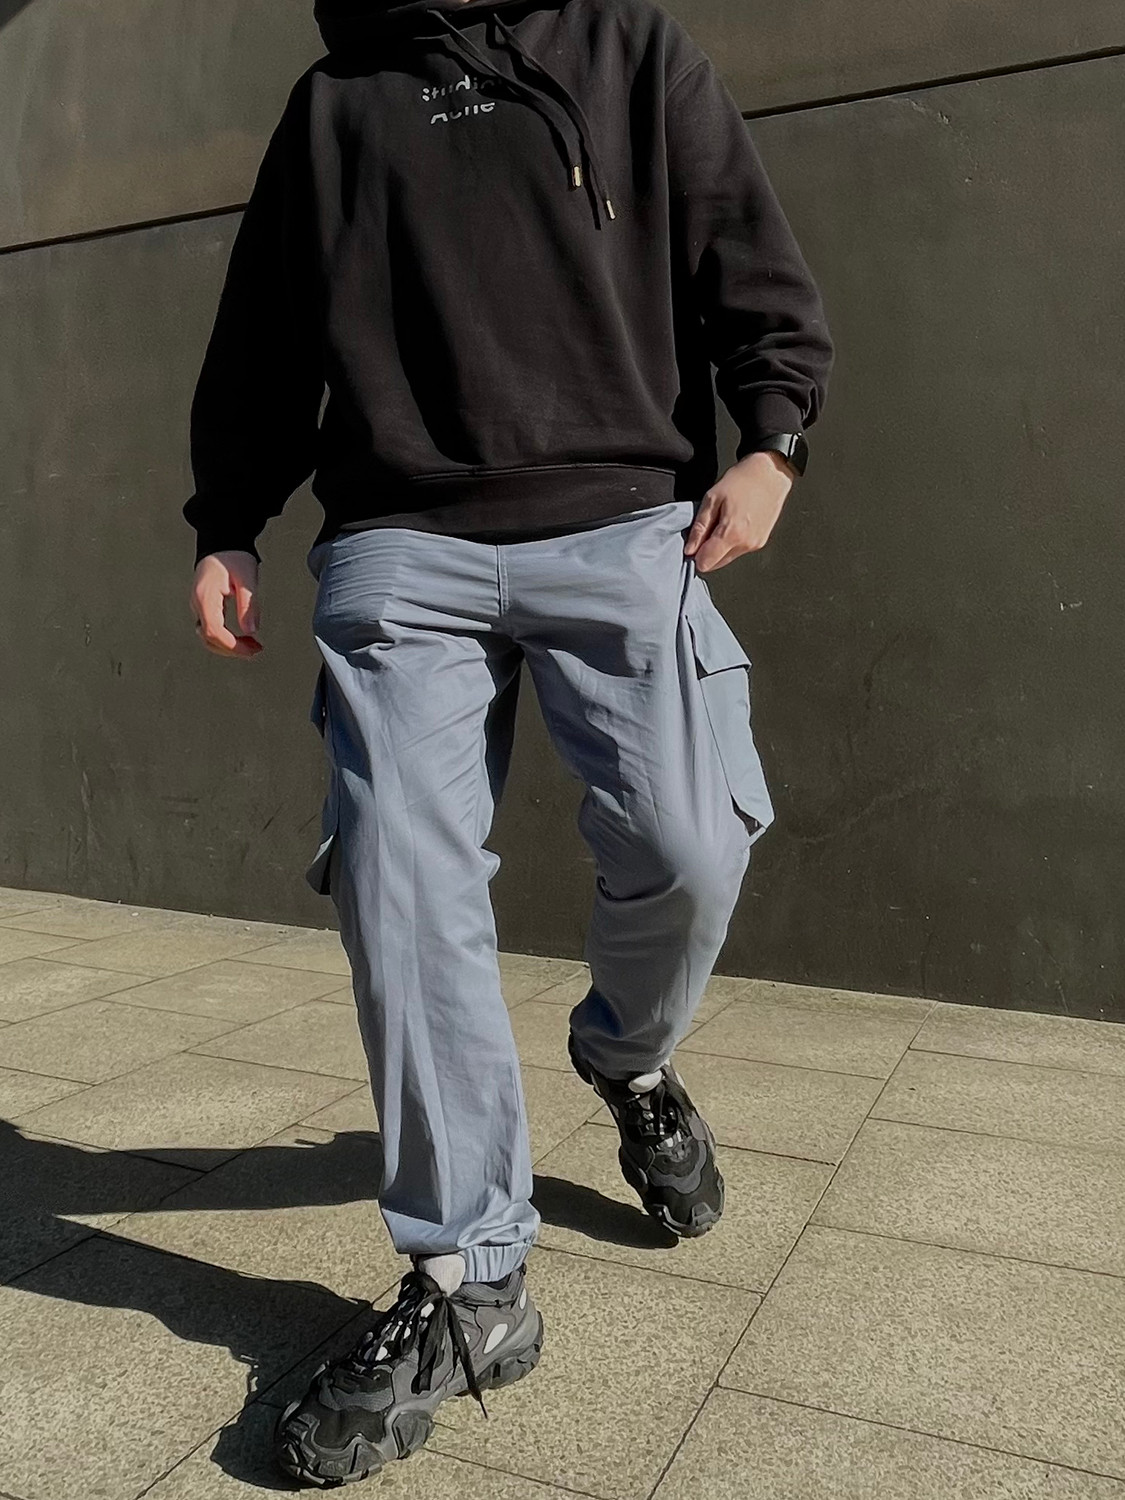 Men's outfit idea for 2021 with black logo / printed hoodie, grey cargo pants, black sneakers. Suitable for spring and fall.